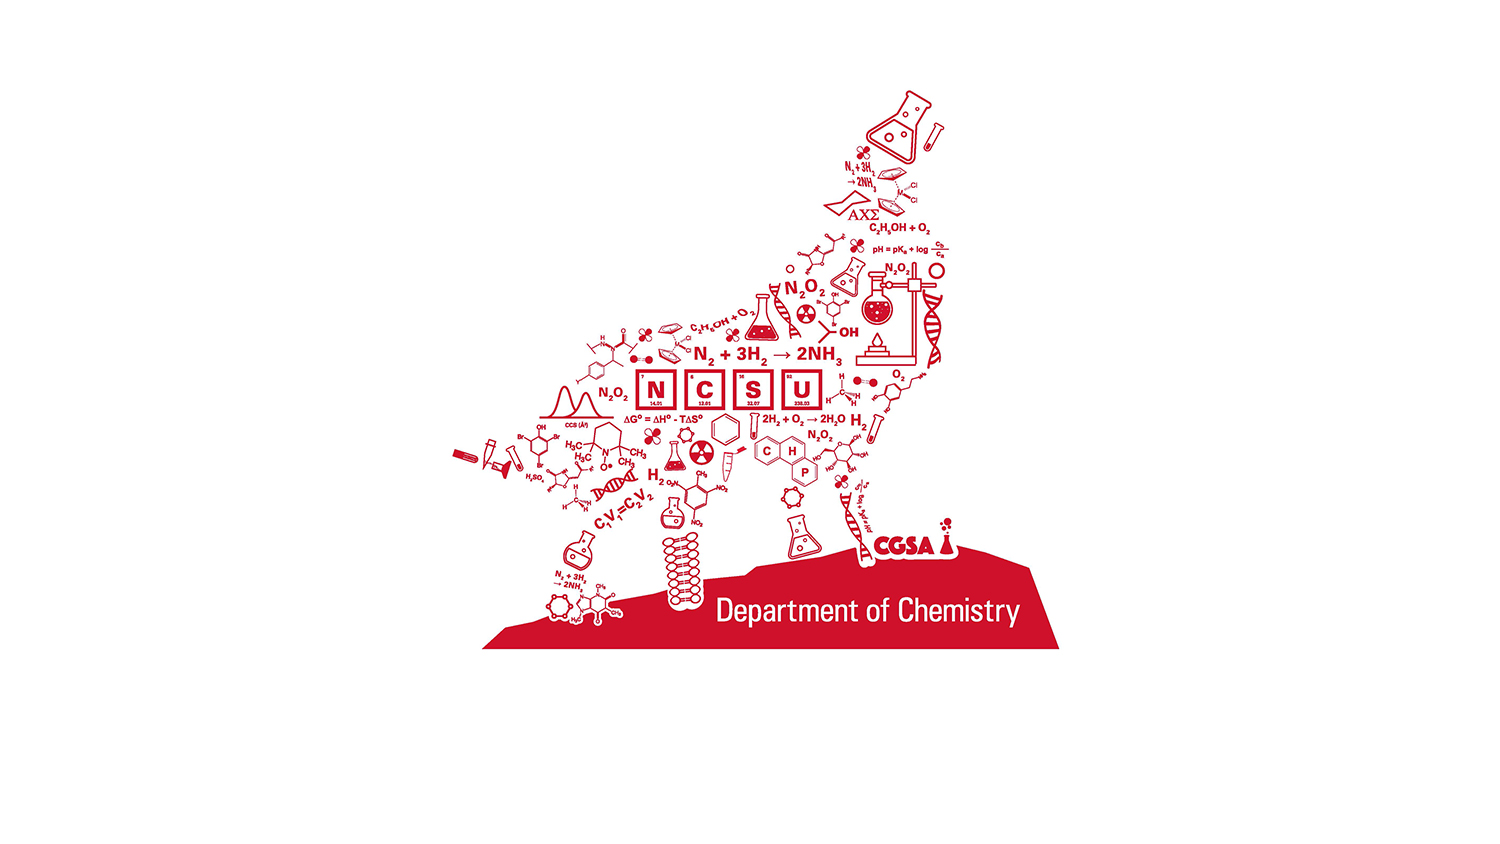 Wolf sketched using chemistry symbols